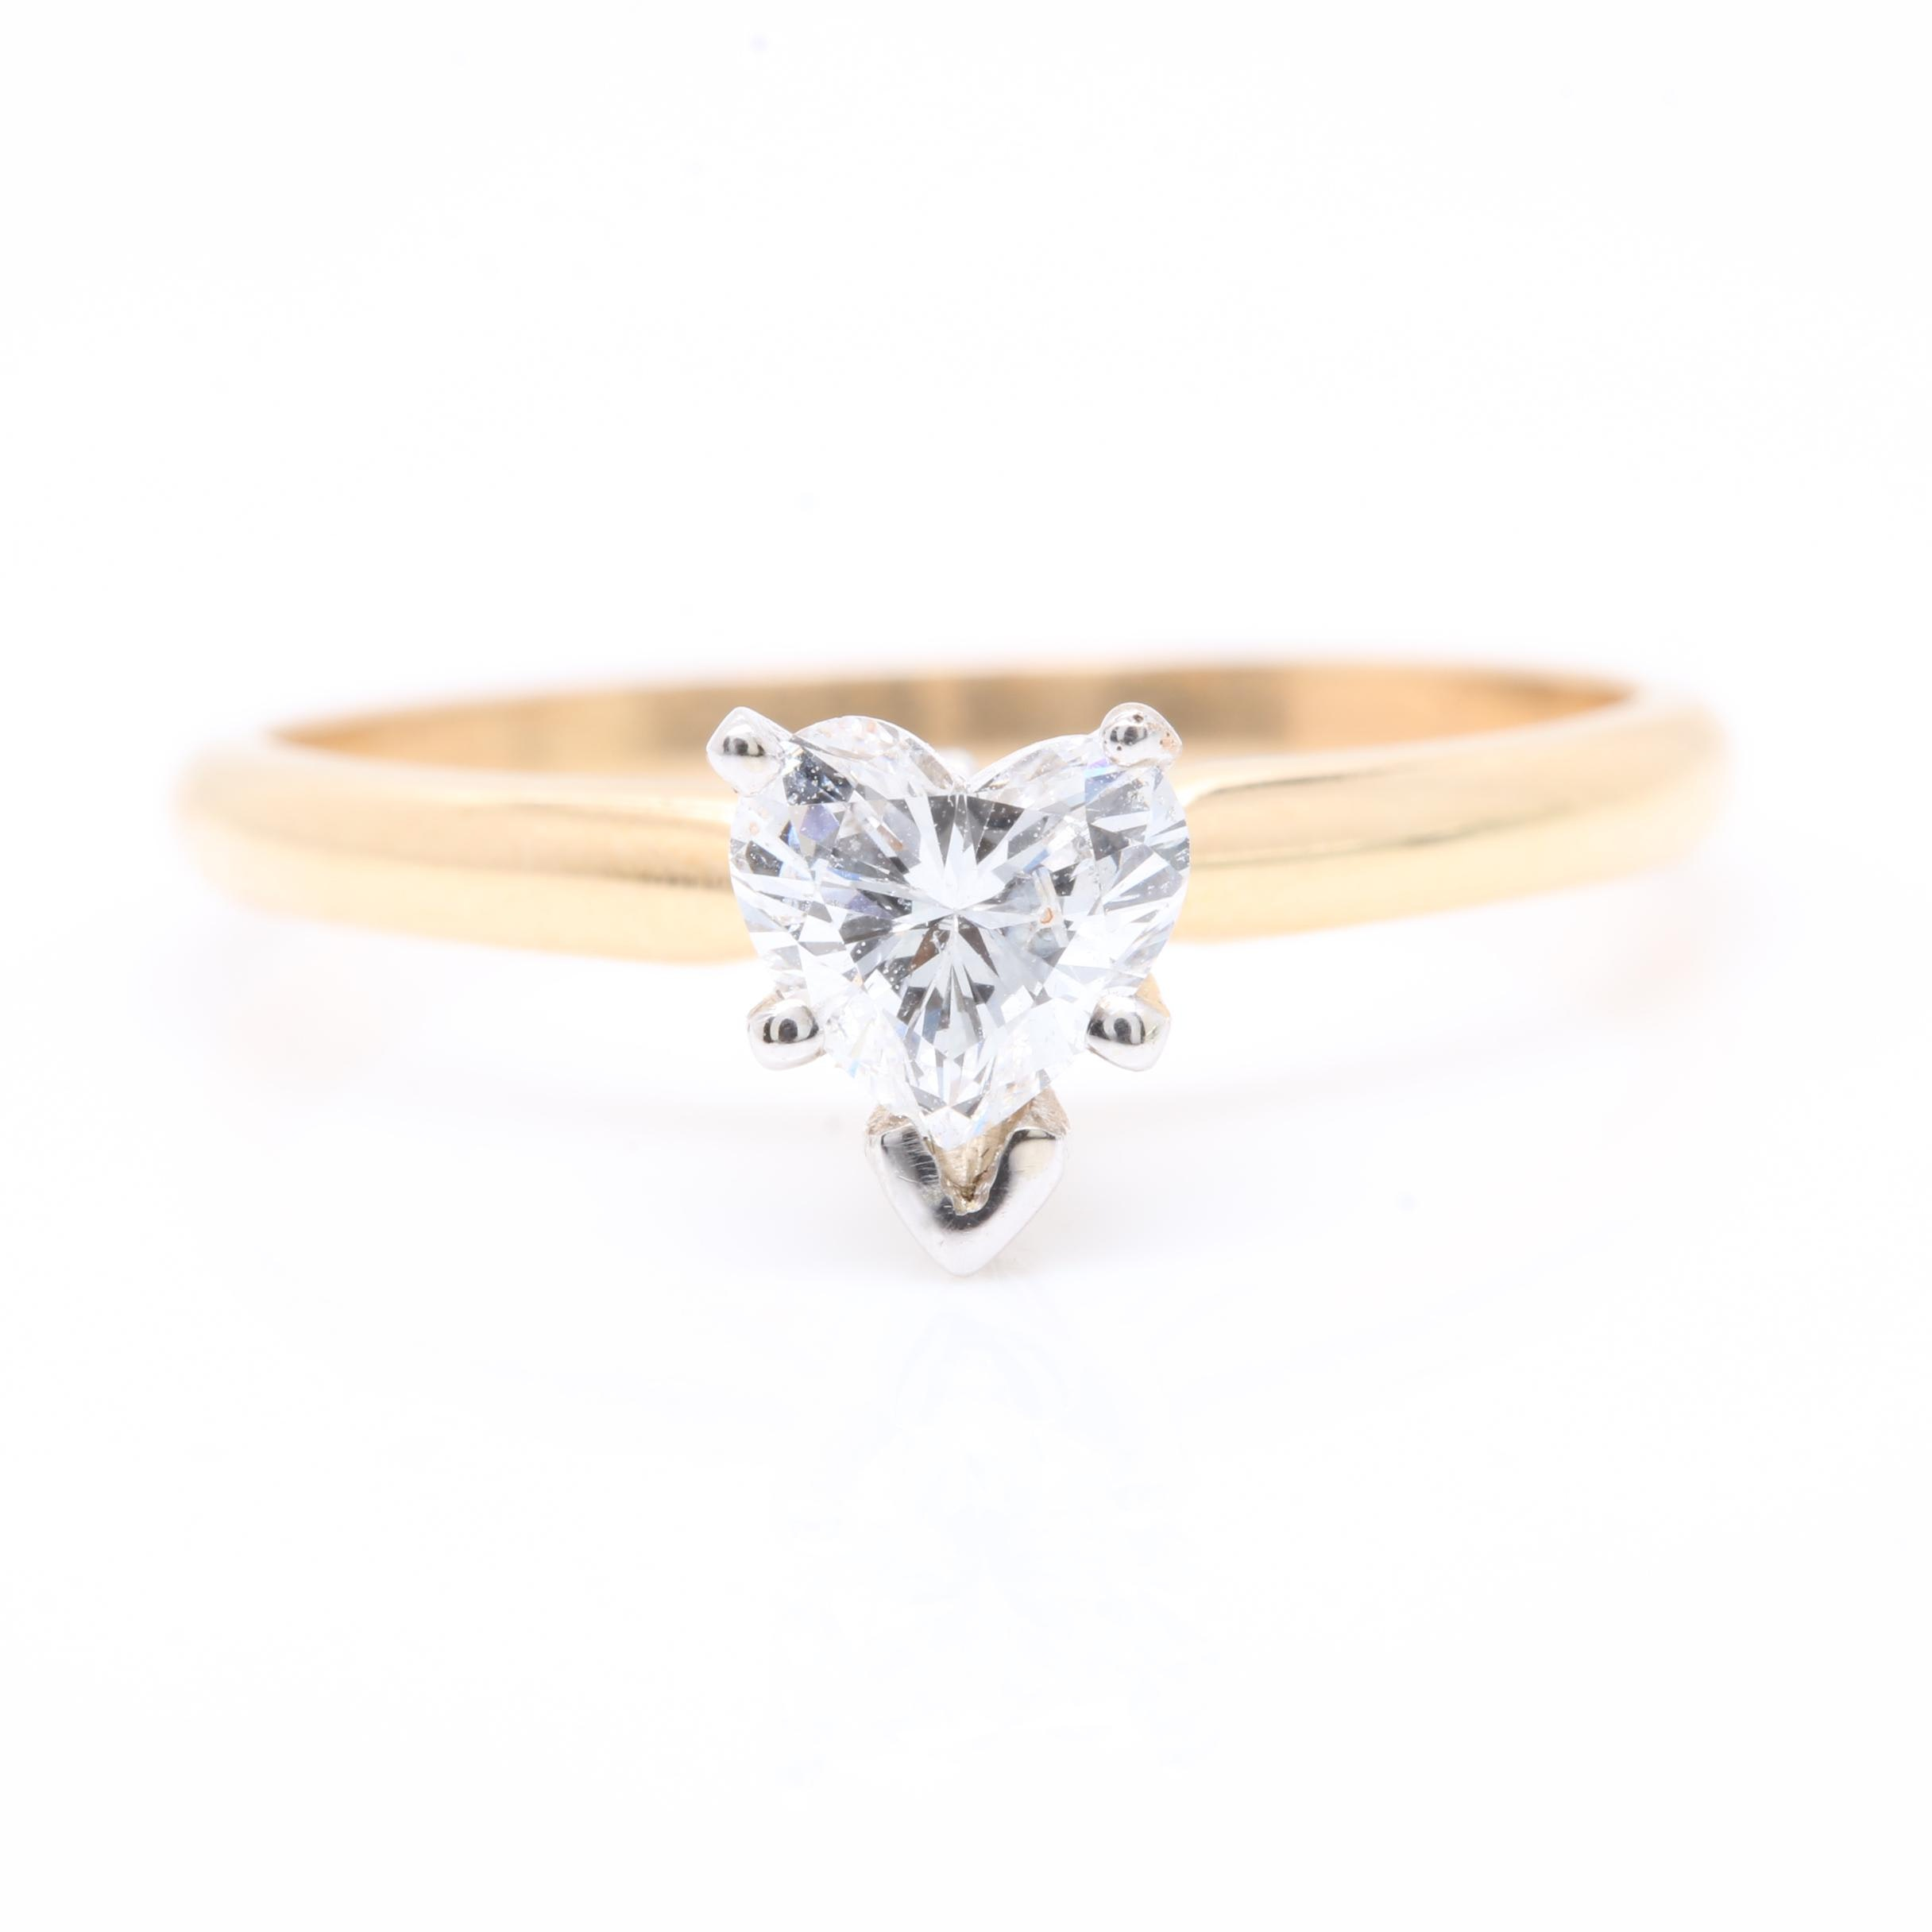 14K Yellow Gold Diamond Heart Solitaire Ring with White Gold Head